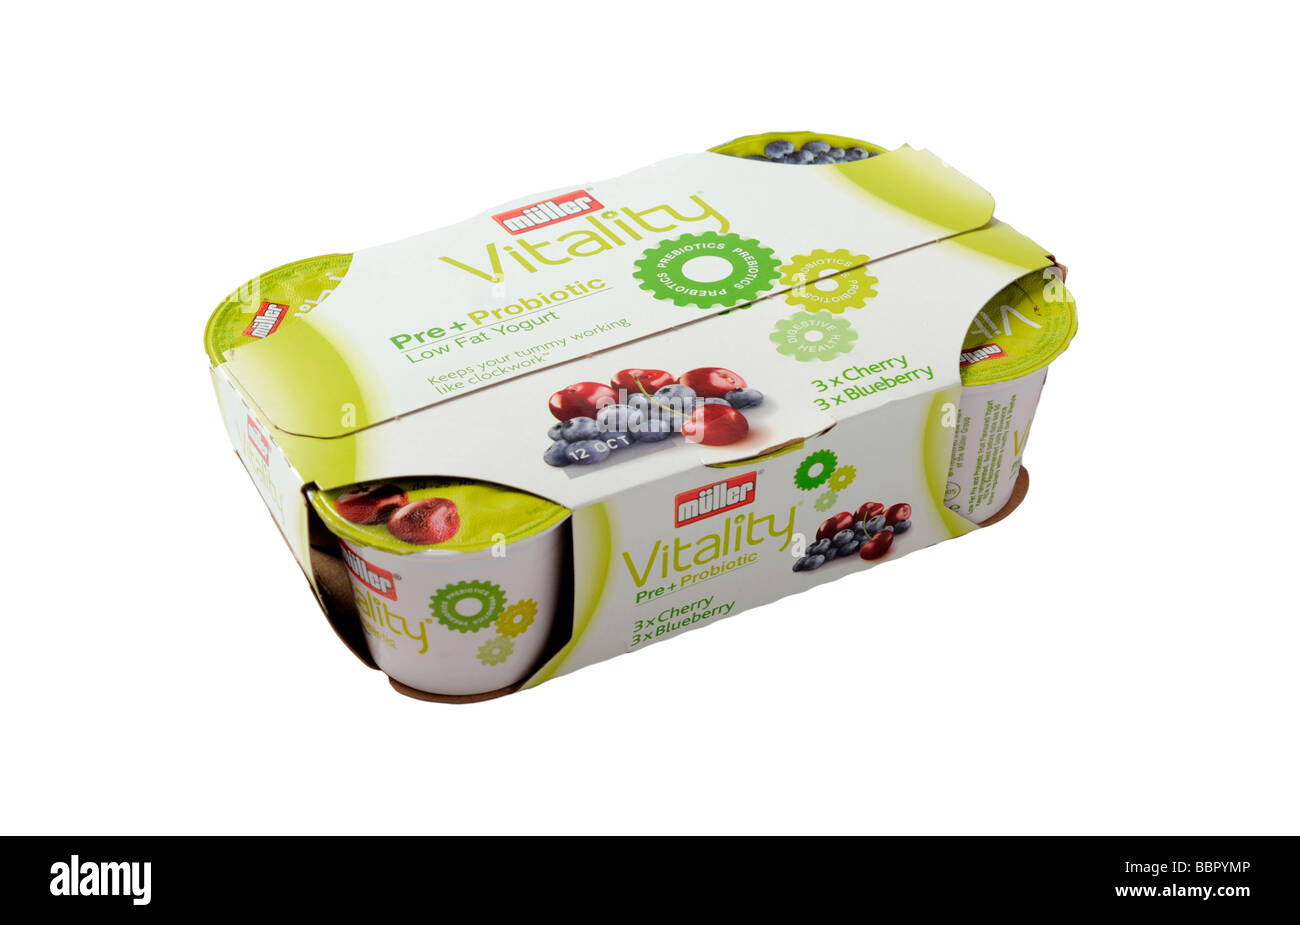 Multi pack yogurt Vitality probiotic yogurt made by Muller Stock